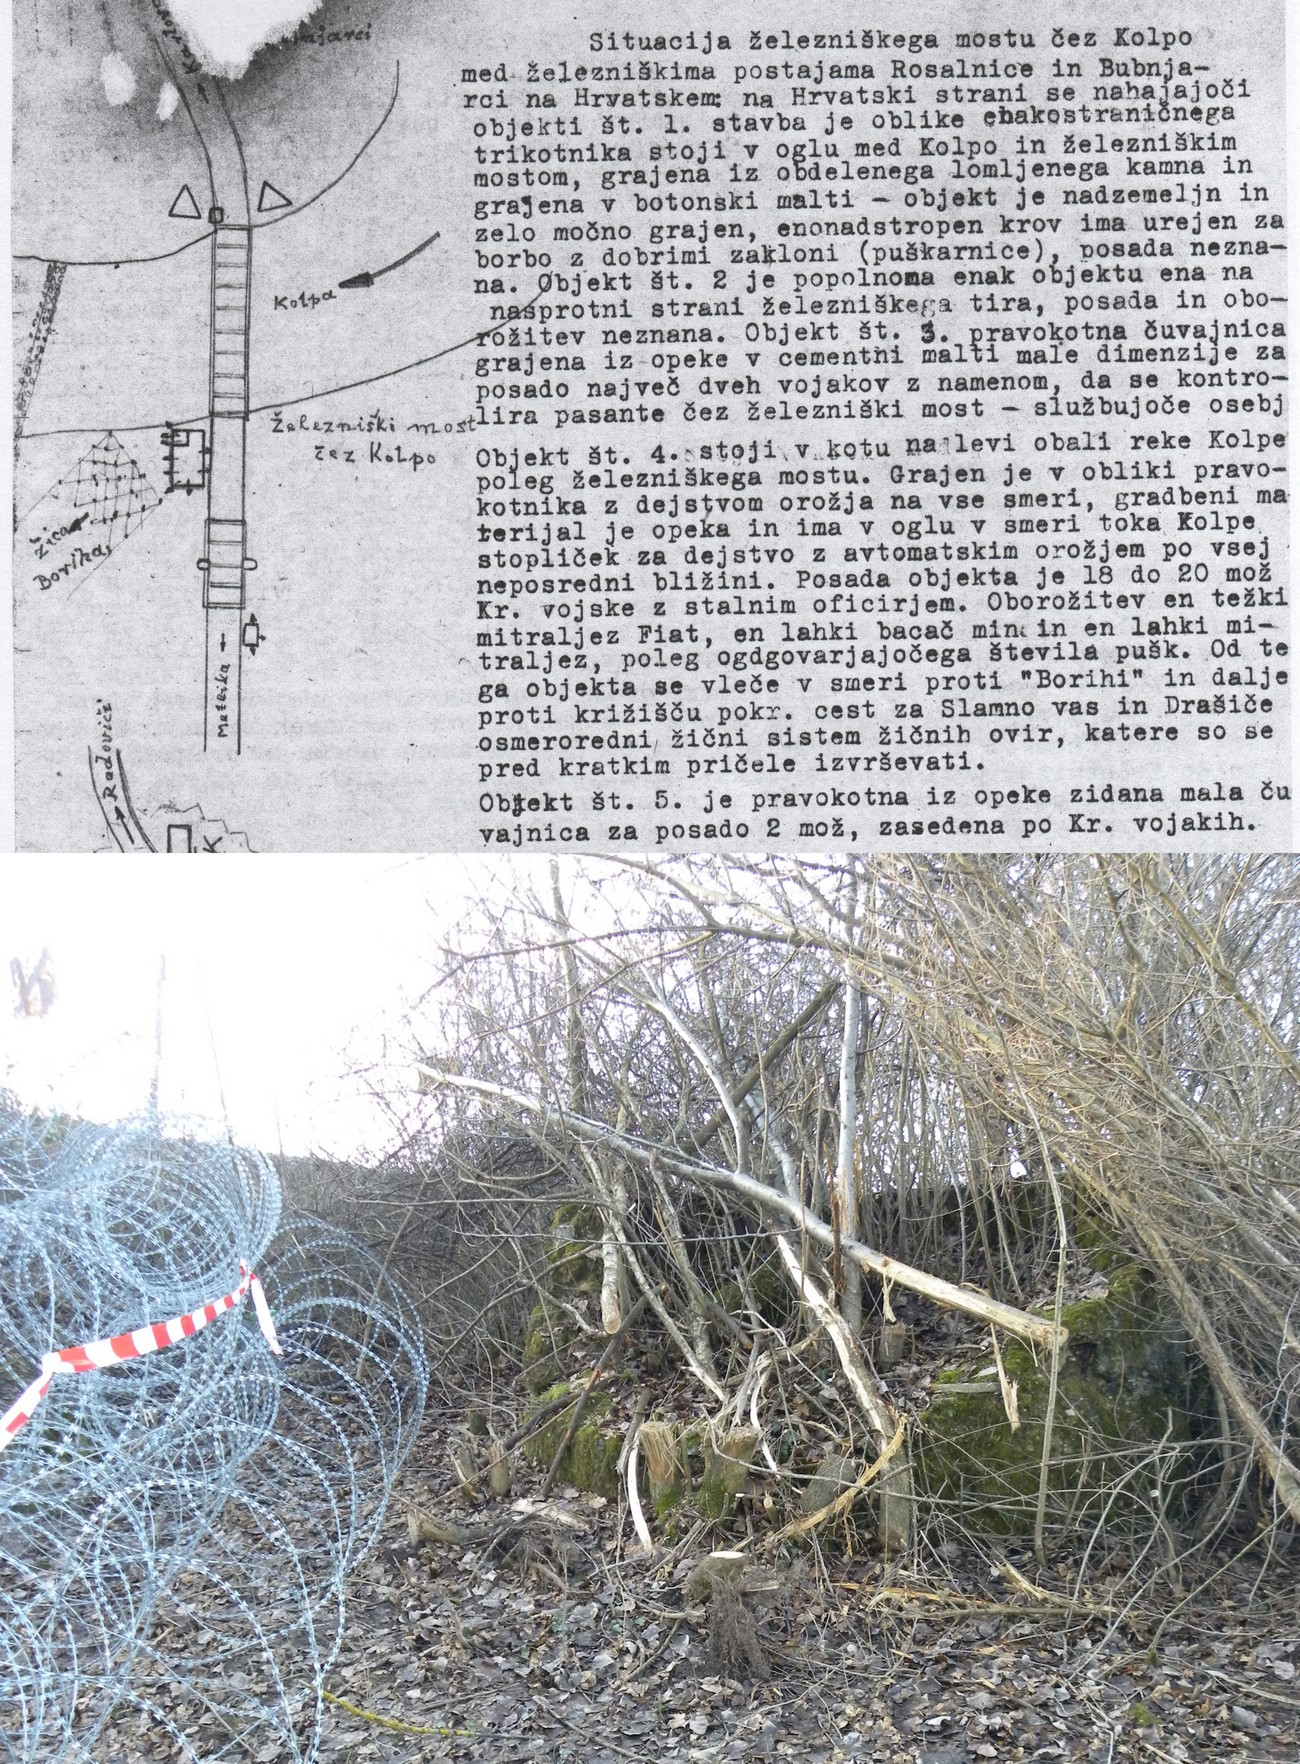 The zone of barbed wire in 8 rows, densely woven, 4 metres wide and 160 cm tall, began at the stone bunker with armed guards on the left bank of the Kolpa River by the railway bridge at Rosalnice. The fortified zone continued N through the forest of Boriha and then turned NW towards the junction of the roads leading to Slamna vas and Drašiči. On the left is a partisan sketch of bunkers by the railway bridge over the Kolpa River at Rosalnice with a detailed description, dated 19 August 1943. Archives of the RS. In the centre and on the right: The remains of the bunker by the railway bridge over the Kolpa River, where the zone of barbed wire began. One photograph shows razor wire, which had been placed in 2015 and was later removed. Author: Blaž Štangelj.